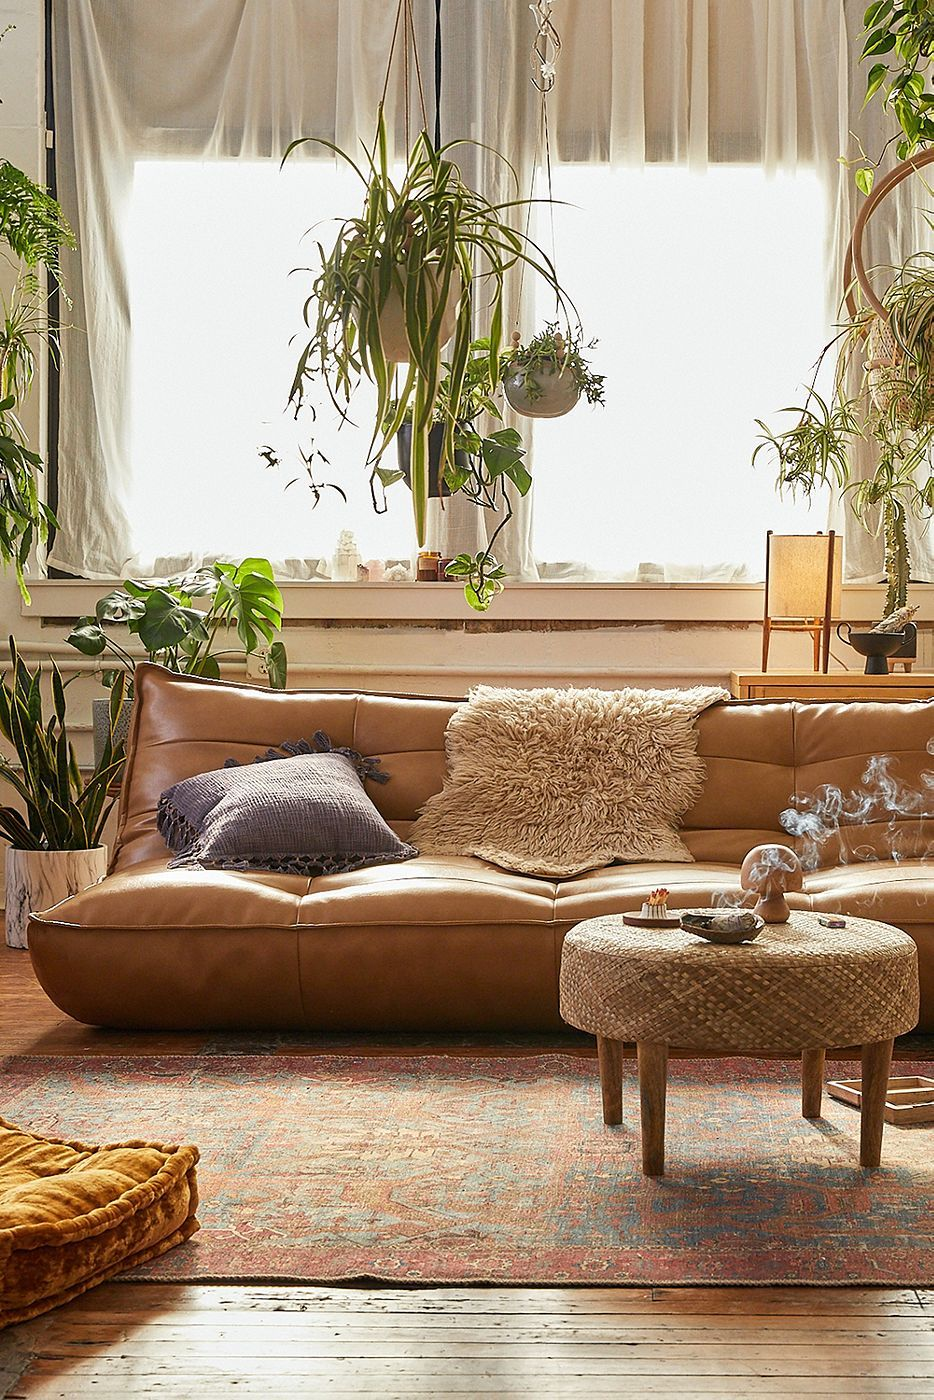 12 Best Comfy Couches and Chairs - Coziest Furniture Pieces to Buy